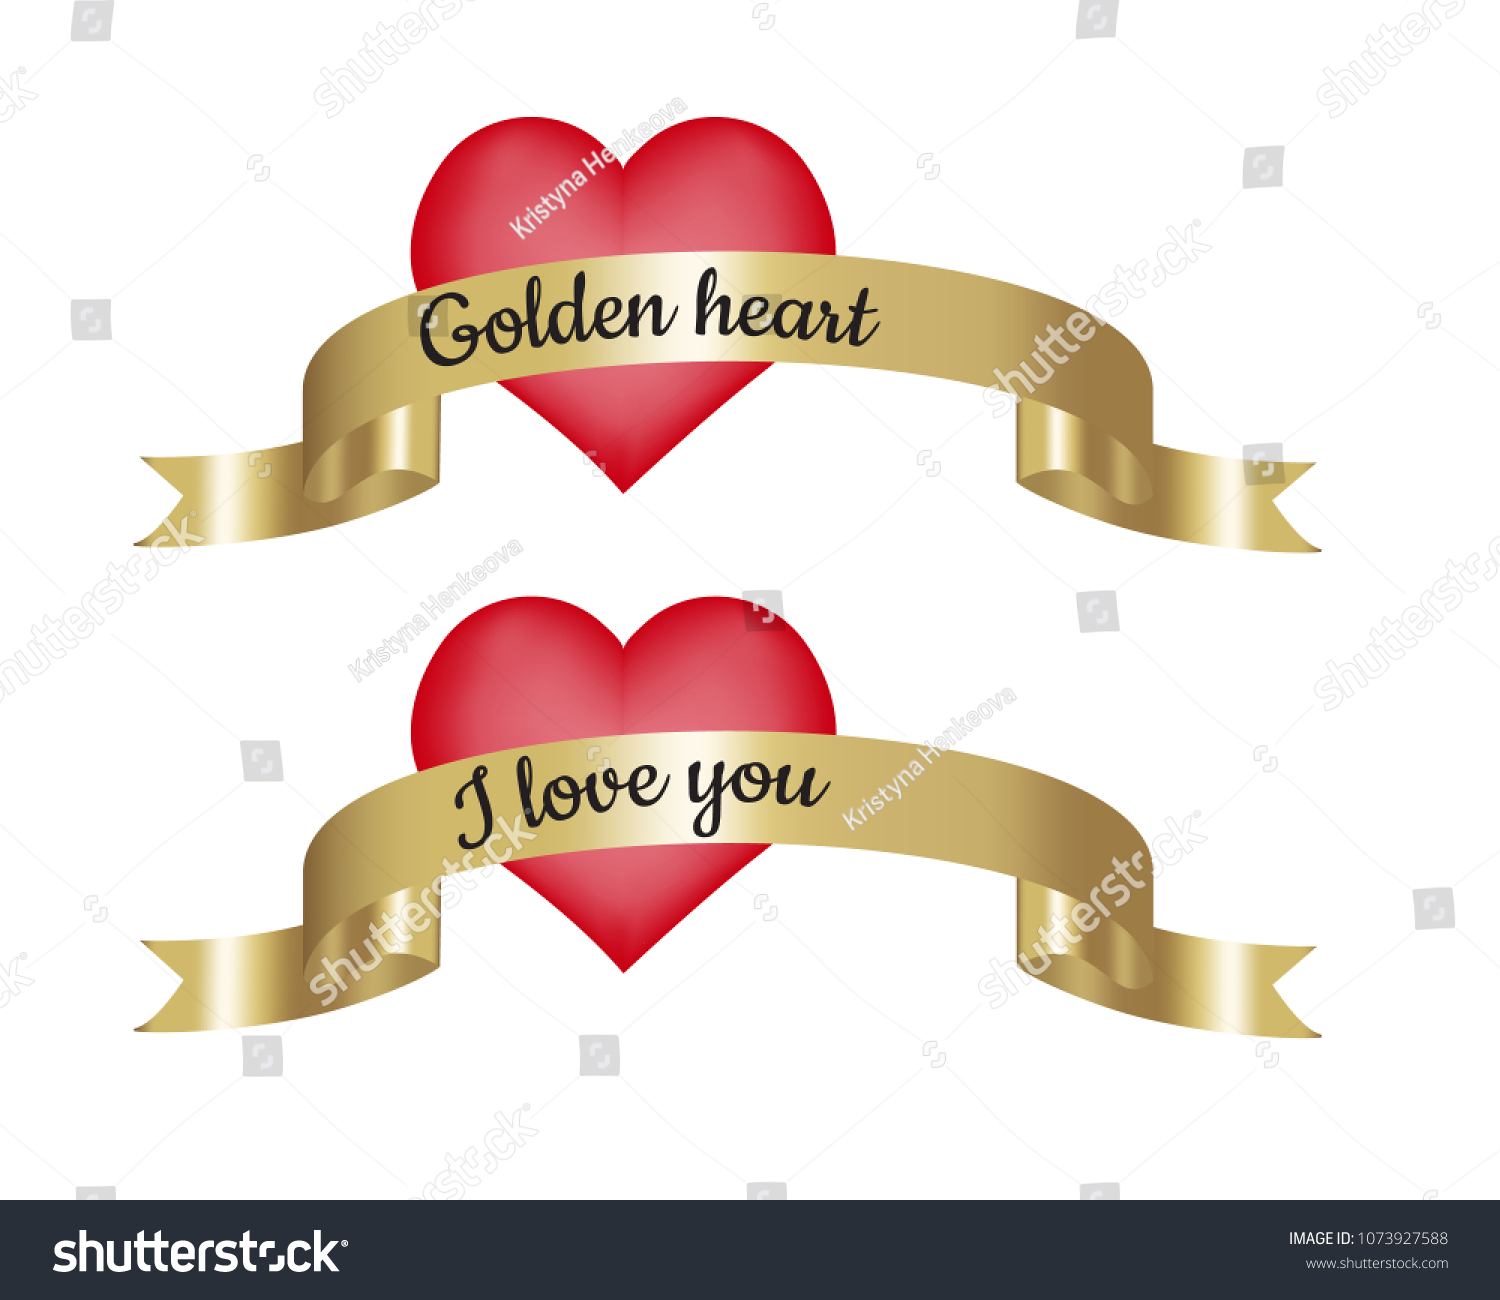 Love You Bilder Golden Heart Love You Text On Stock Vector (royalty Free) 1073927588